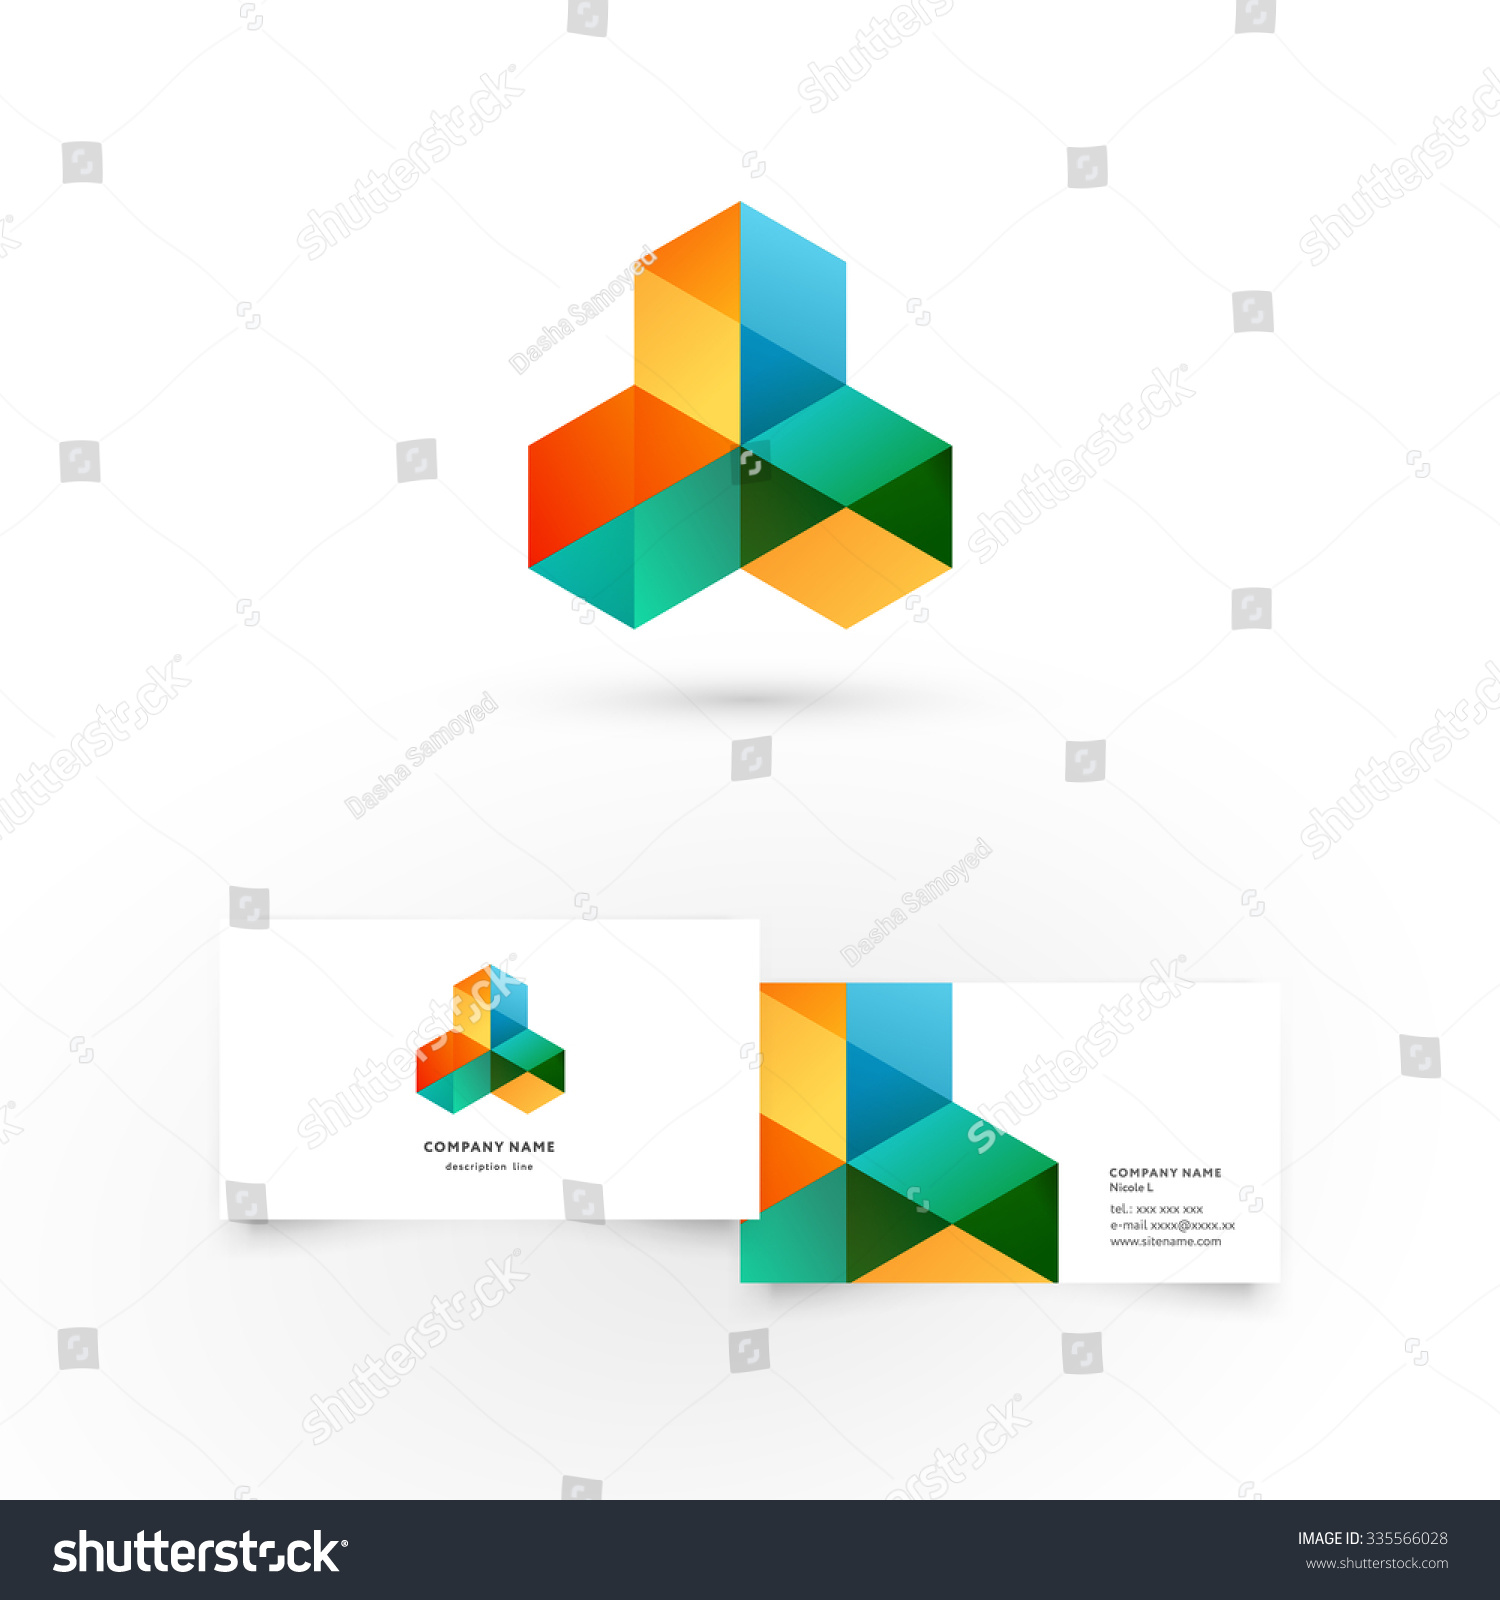 modern icon design logo element business stock vector 335566028 shutterstock. Black Bedroom Furniture Sets. Home Design Ideas